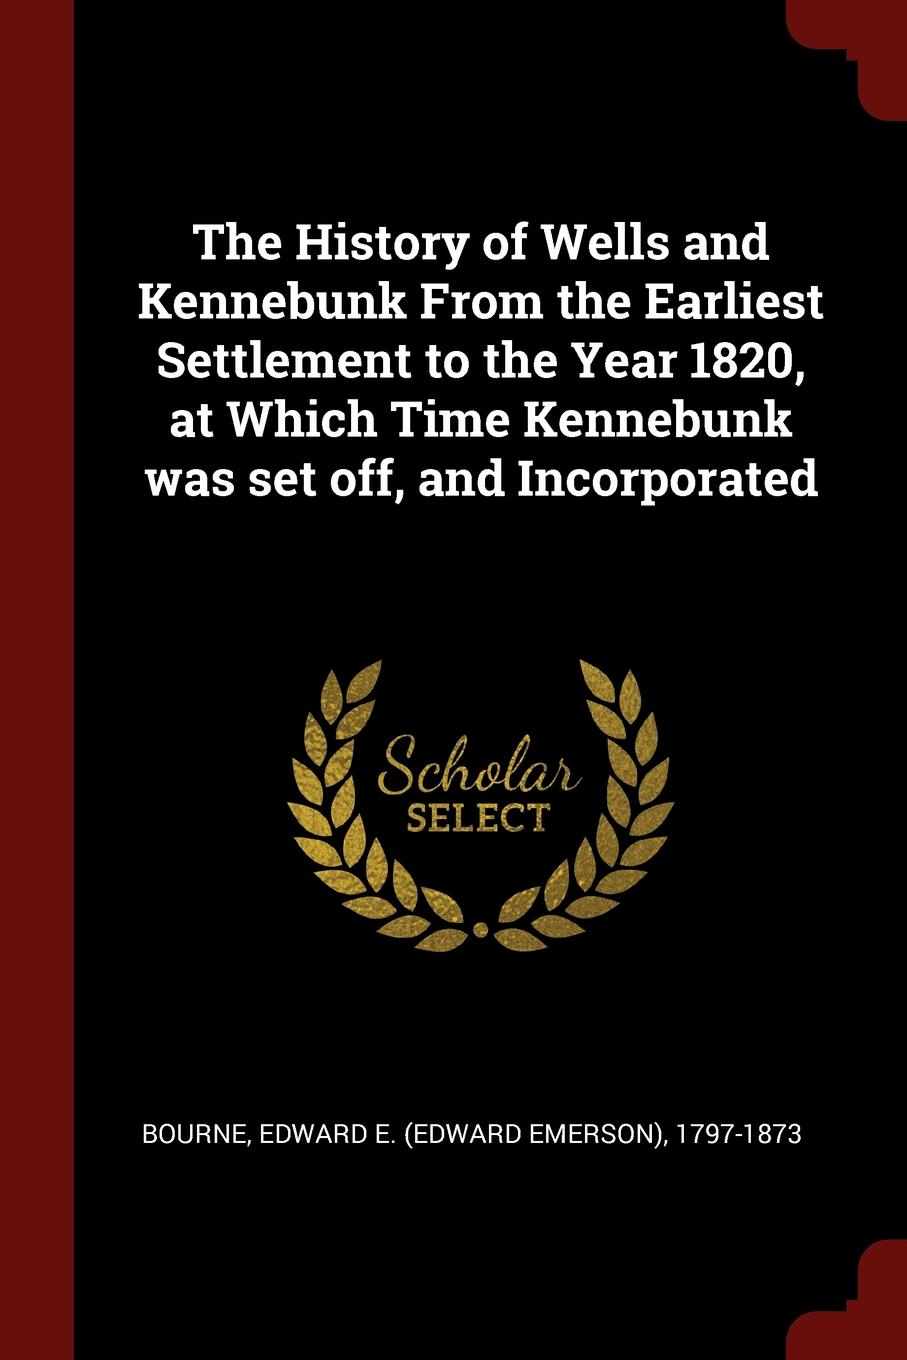 The History of Wells and Kennebunk From the Earliest Settlement to the Year 1820, at Which Time Kennebunk was set off, and Incorporated